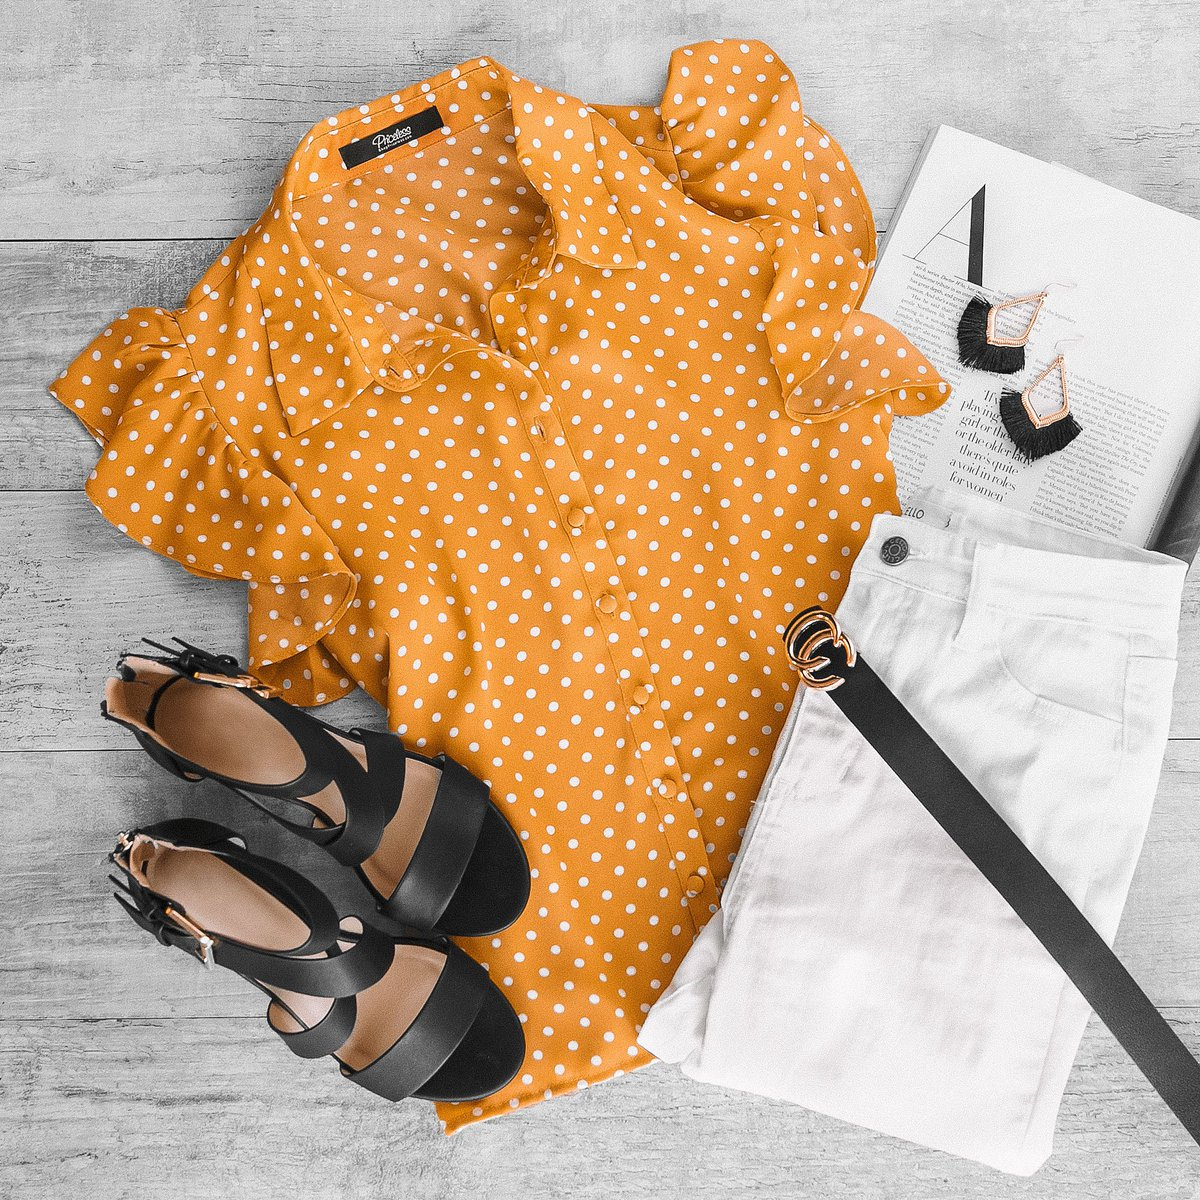 every girl needs a polkadot blouse  shop this classy #EasterOutfit below!   Top:  https:// bit.ly/2IeKvSH     Bottom:  https:// bit.ly/2tqIeeh     Belt:  https:// bit.ly/2FhbdIp     Shoes:  https:// bit.ly/2IabMFX    <br>http://pic.twitter.com/RVVWw0GoMc